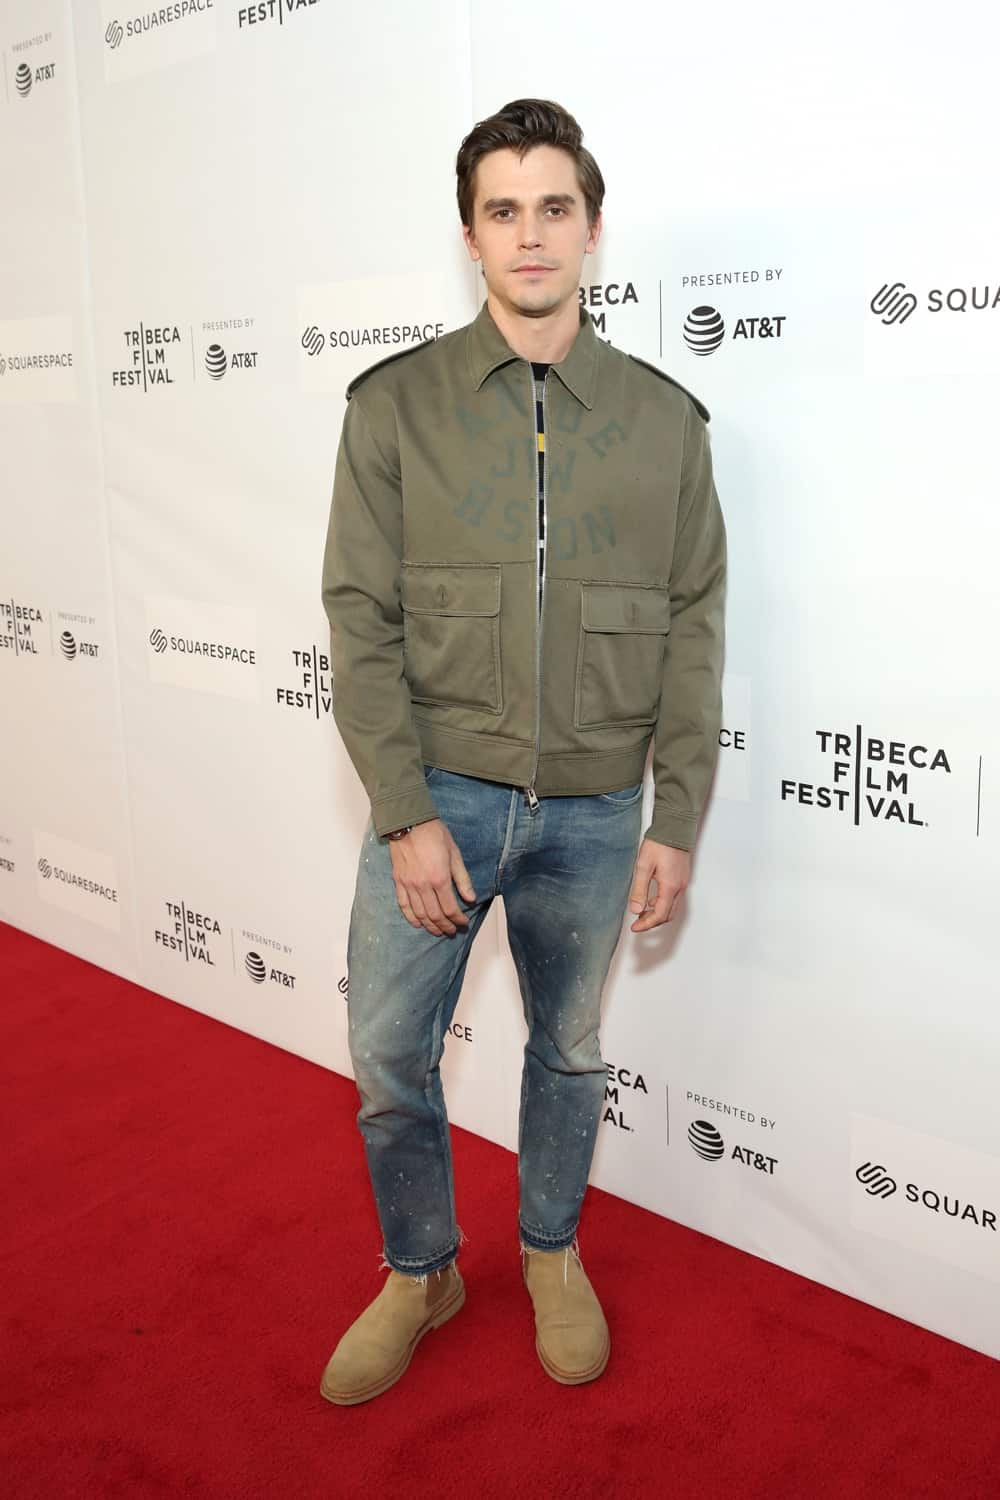 Antoni Porowski World Premiere Of 'GAY CHORUS DEEP SOUTH' Documentary, Developed And Produced By Airbnb At The 2019 Tribeca Film Festival